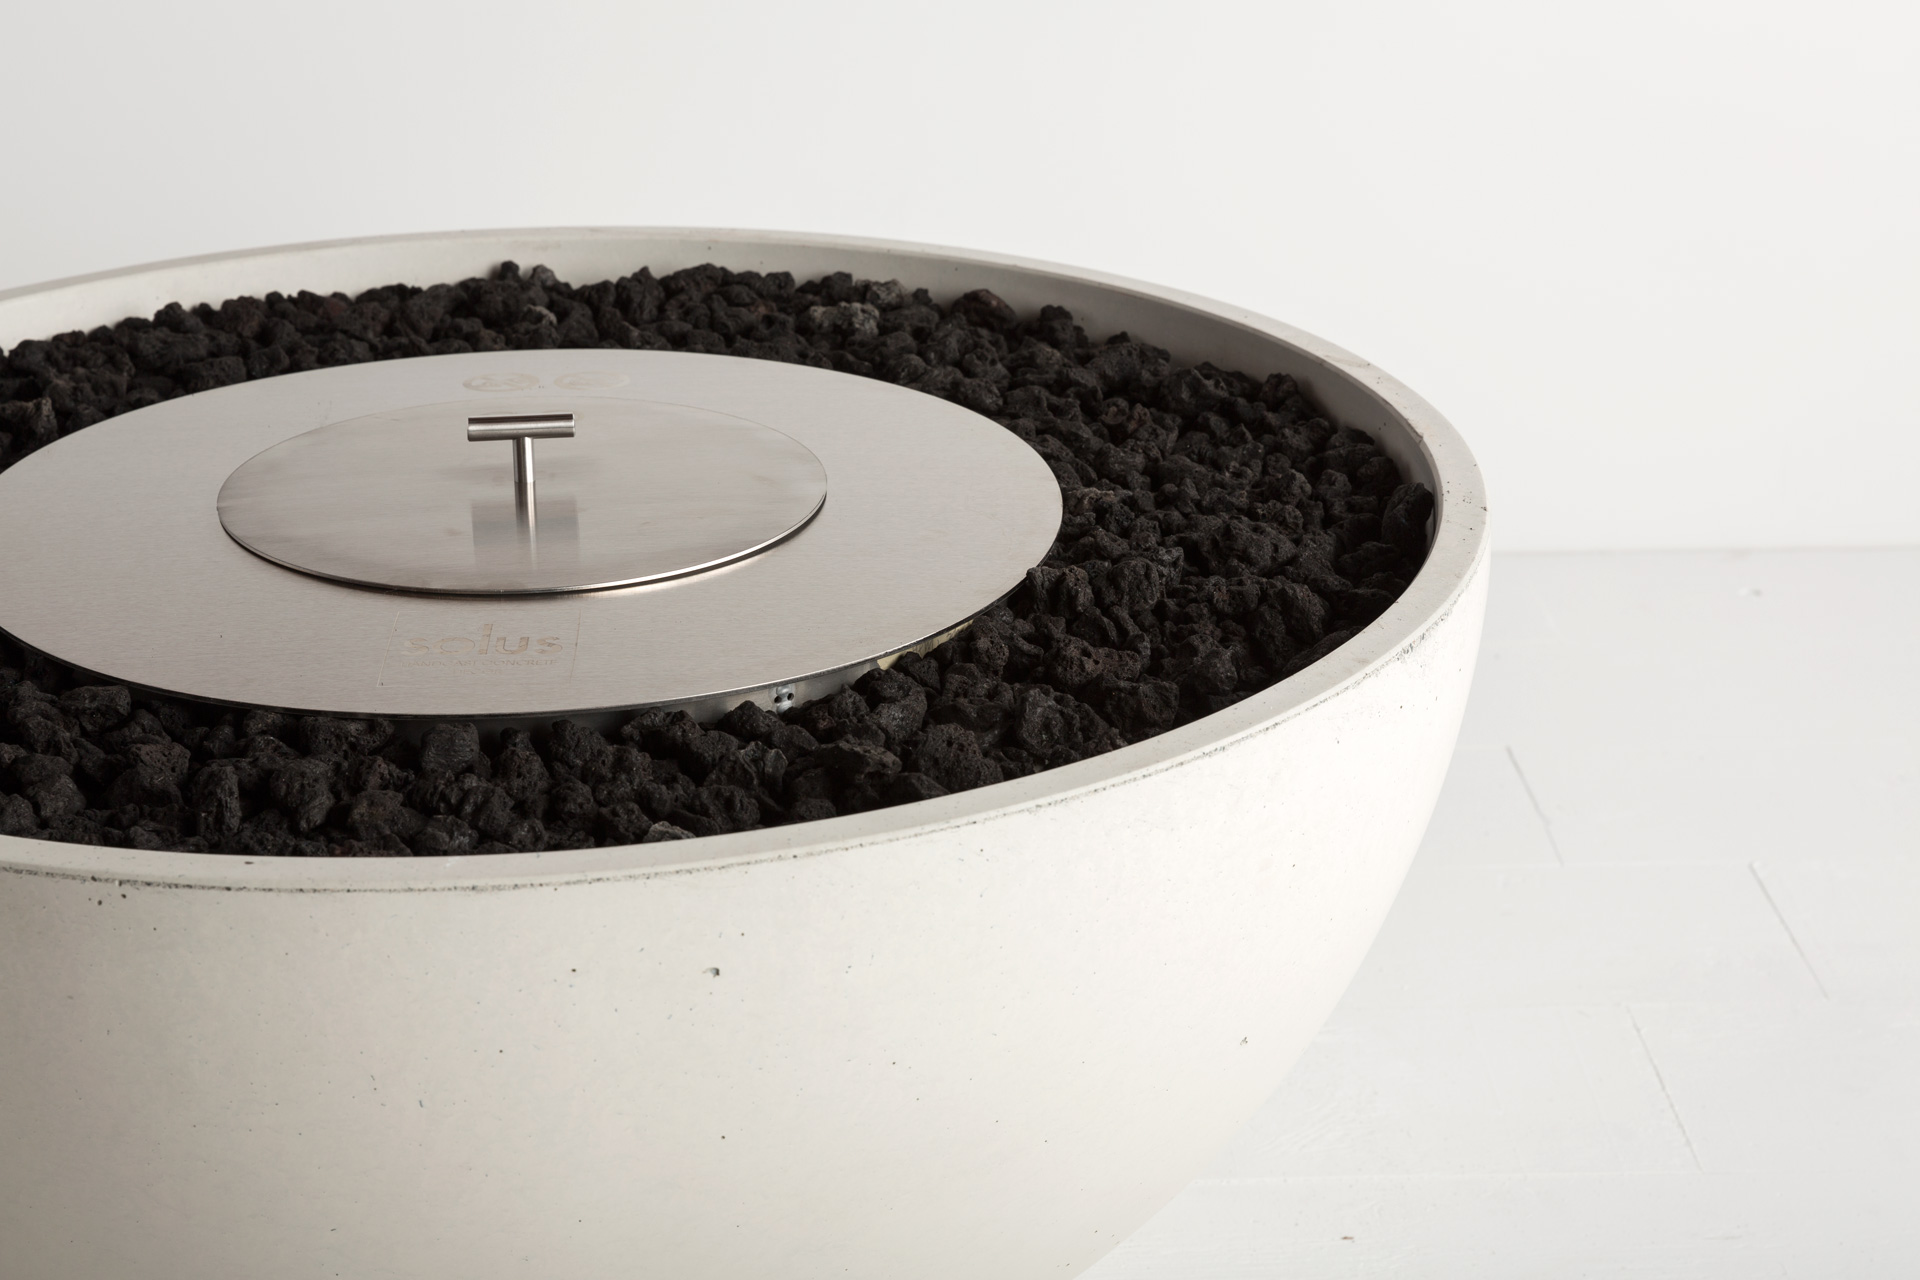 Solus hemi gas fire pit shown with ethanol burner and lid